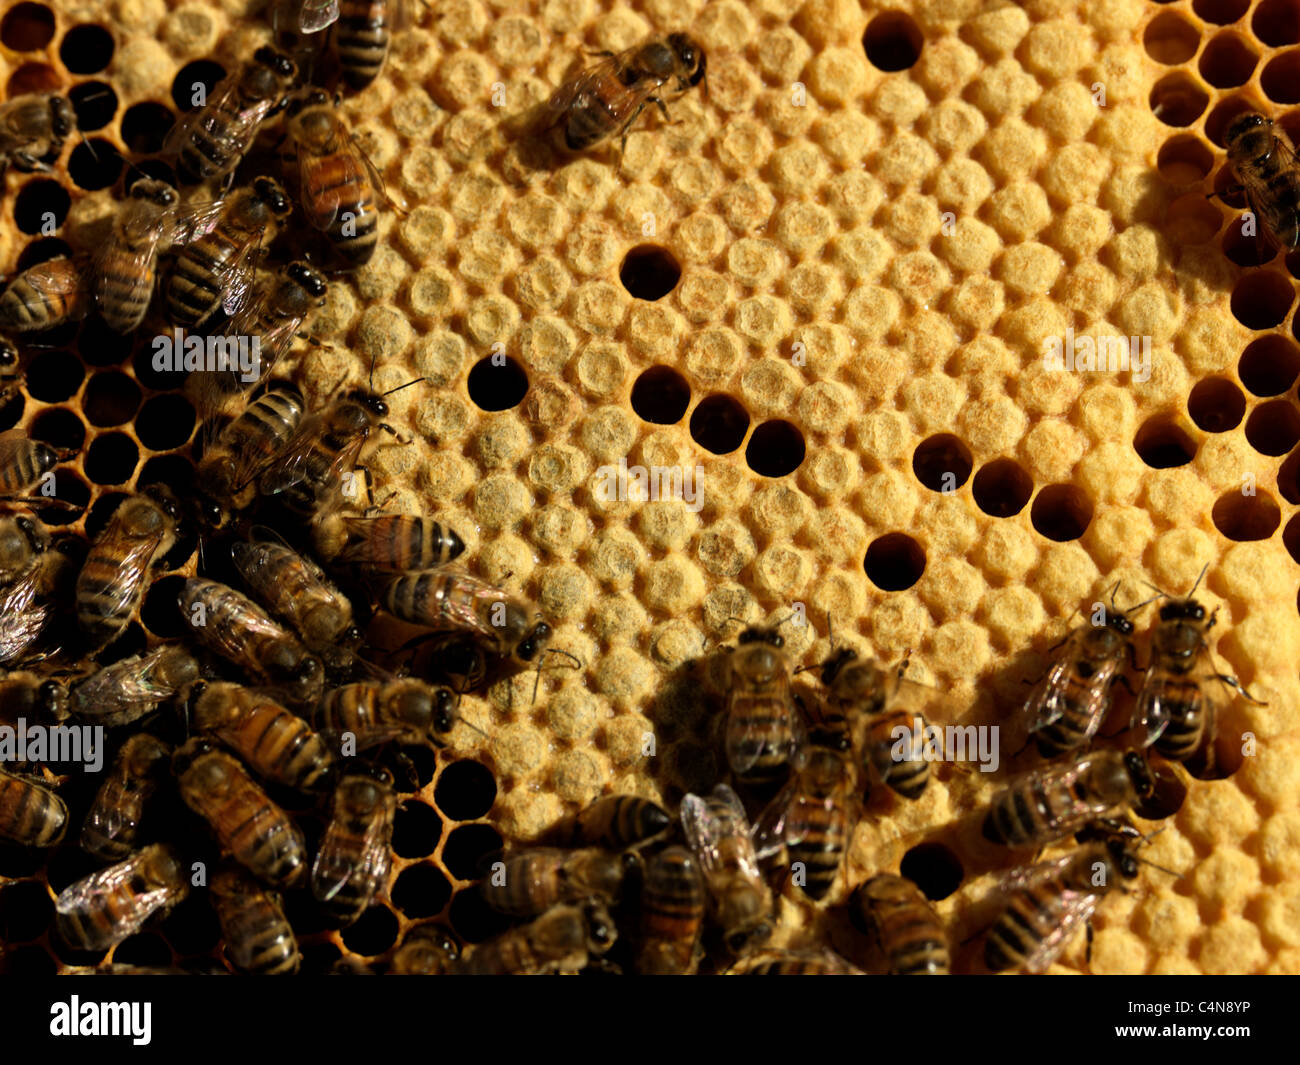 Honey Bees In Hive Showing Sealed Brood - Stock Image